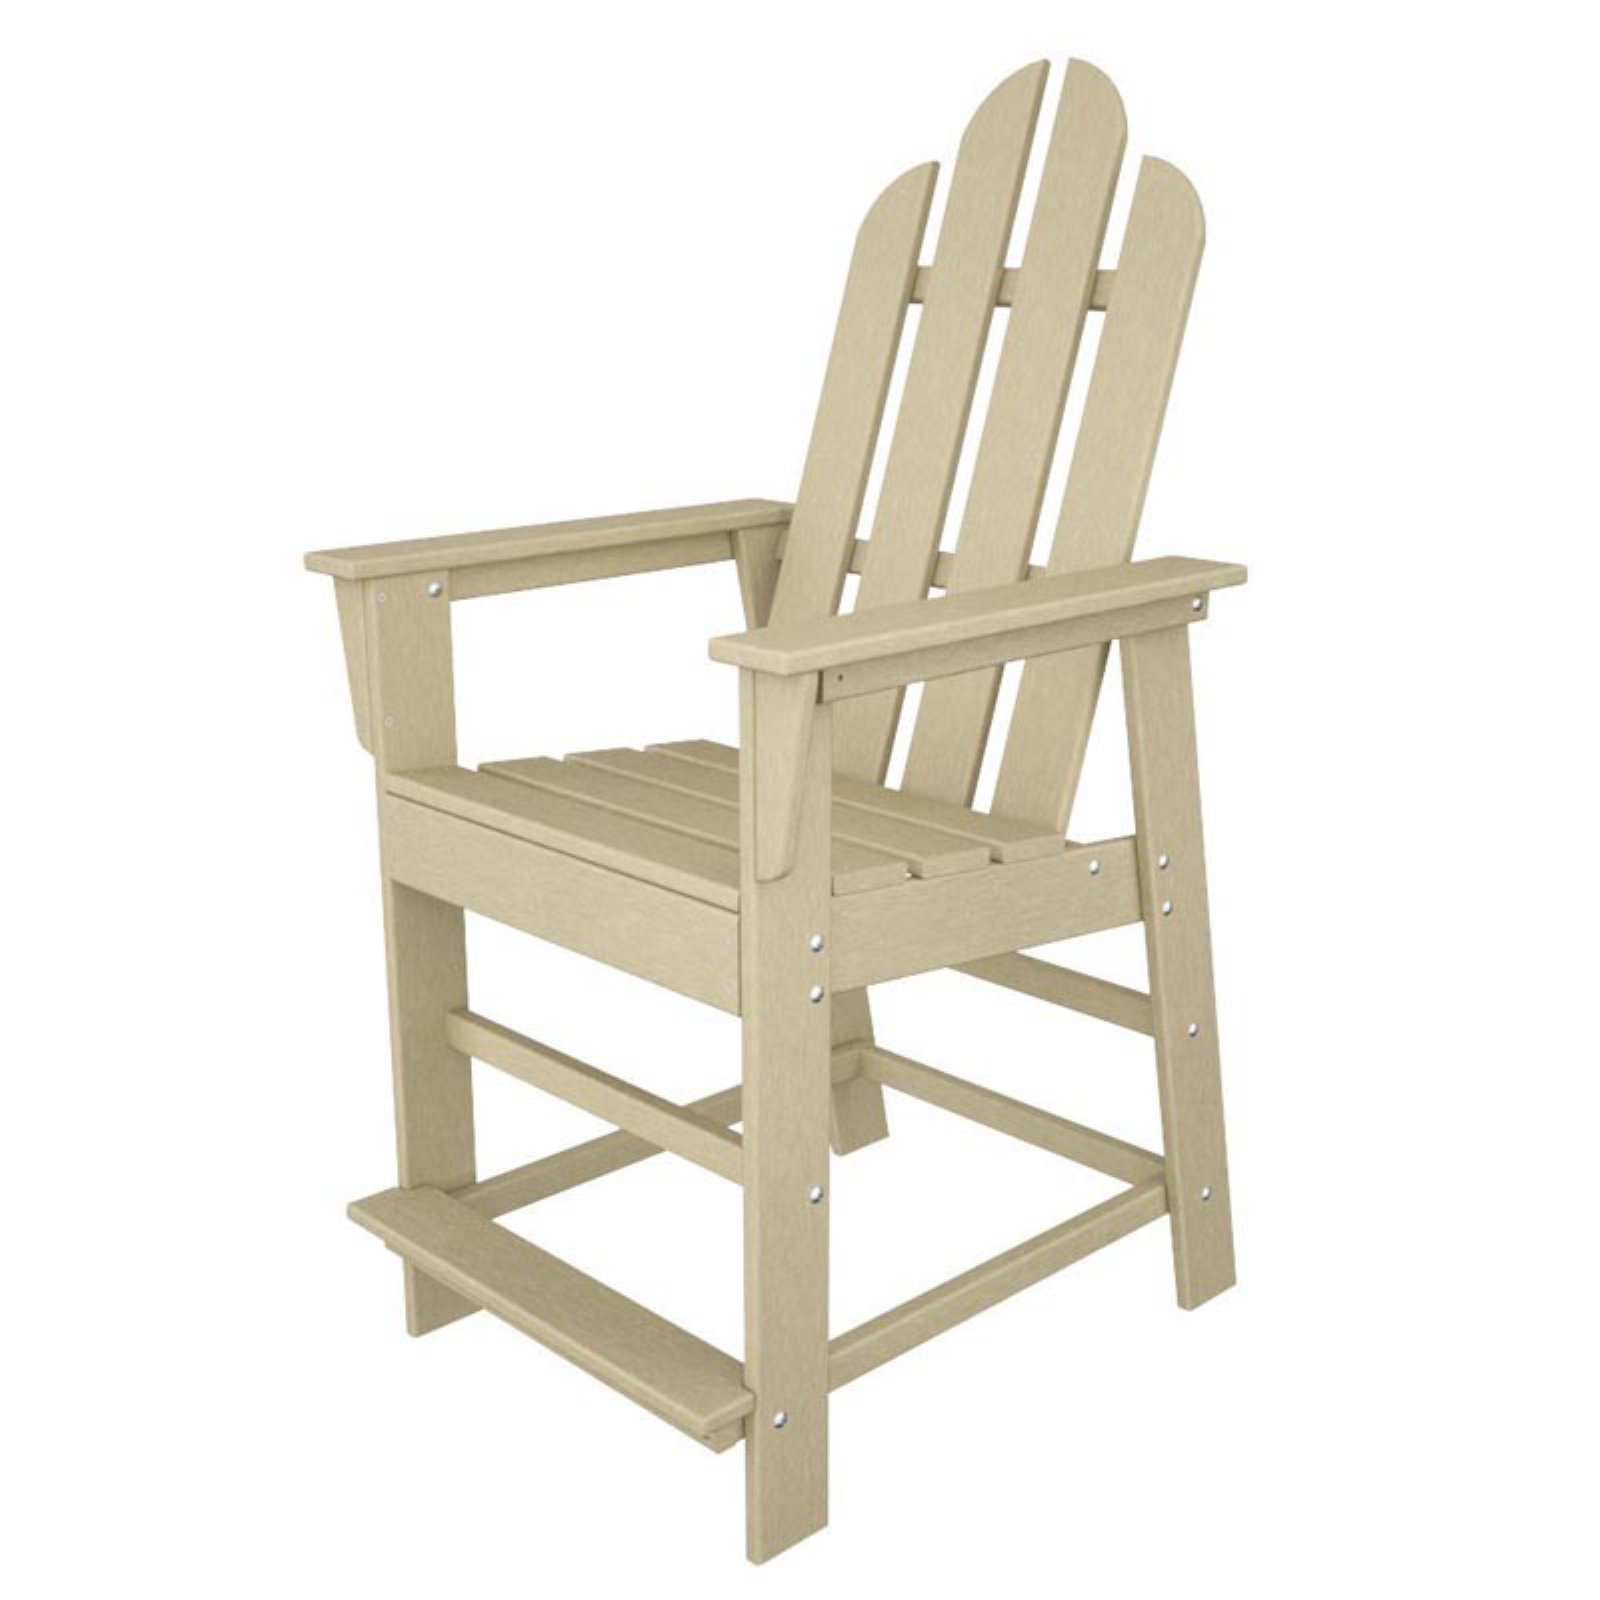 POLYWOODu0026reg; Long Island Recycled Plastic 24 In. Outdoor Counter Chair    Walmart.com